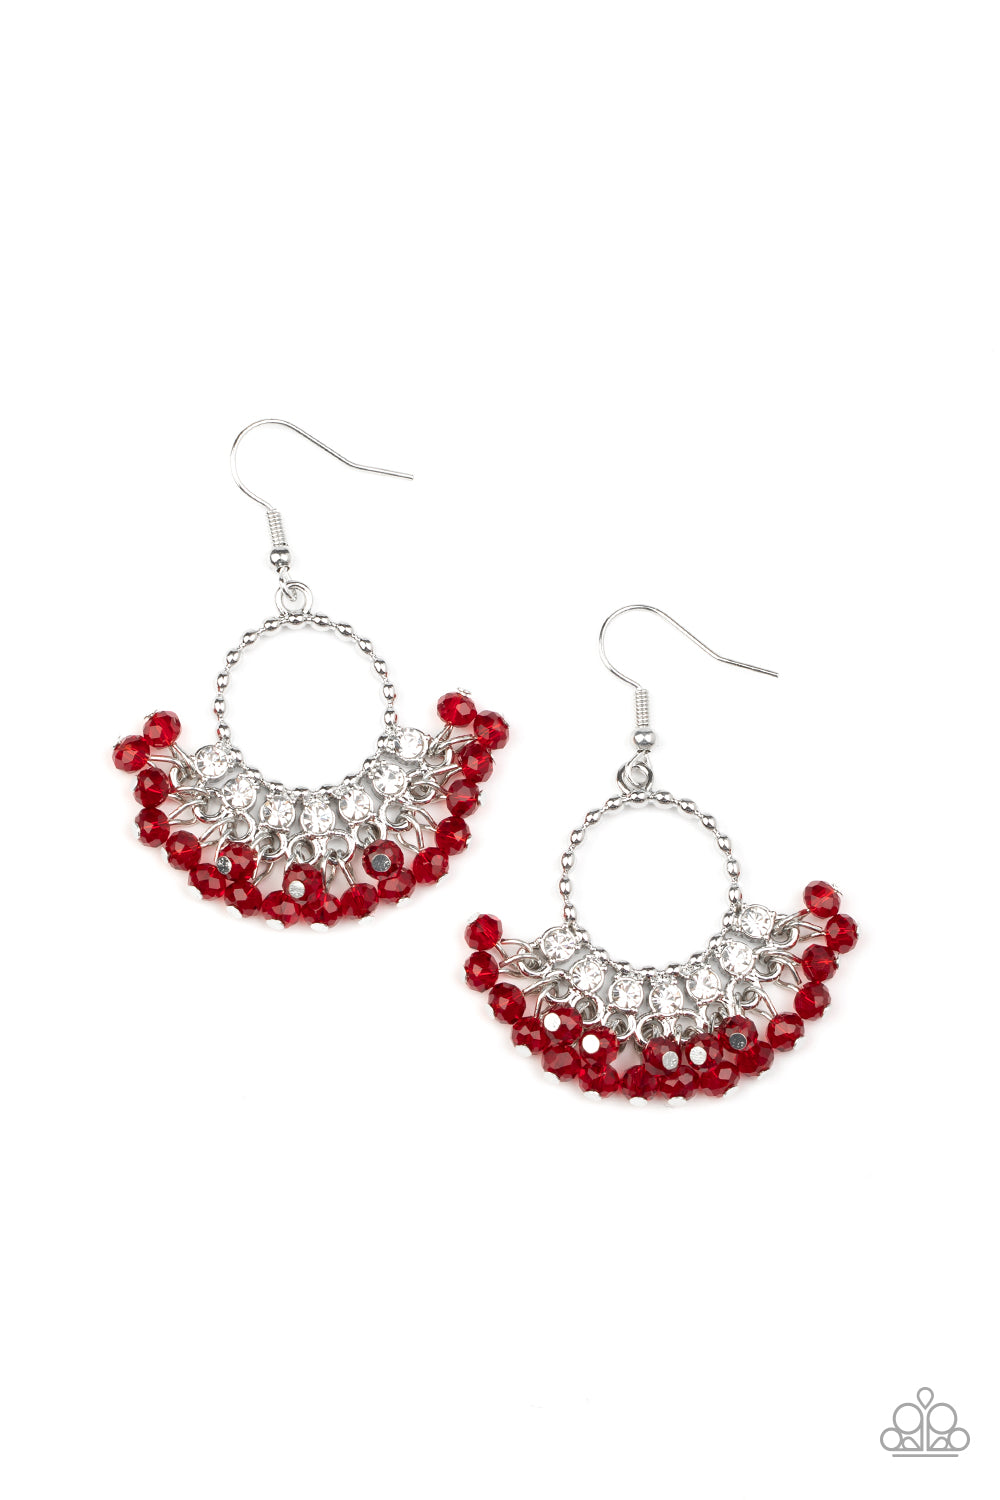 Charmingly Cabaret Red Earring